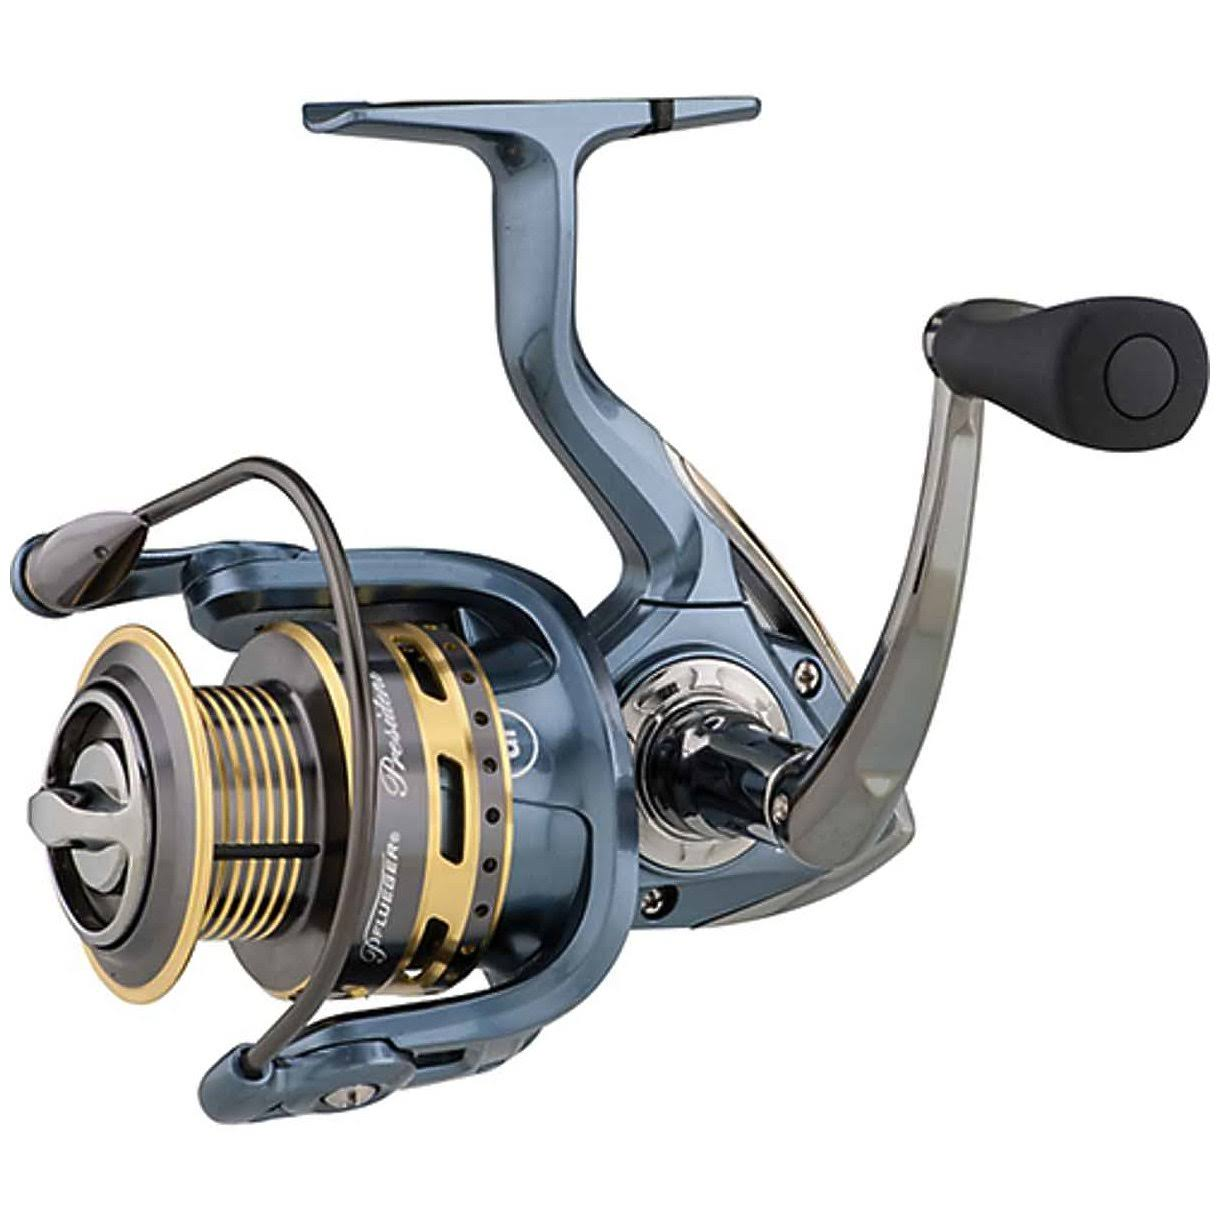 Pflueger President Spinning Fishing Reel - Right or Left Handed